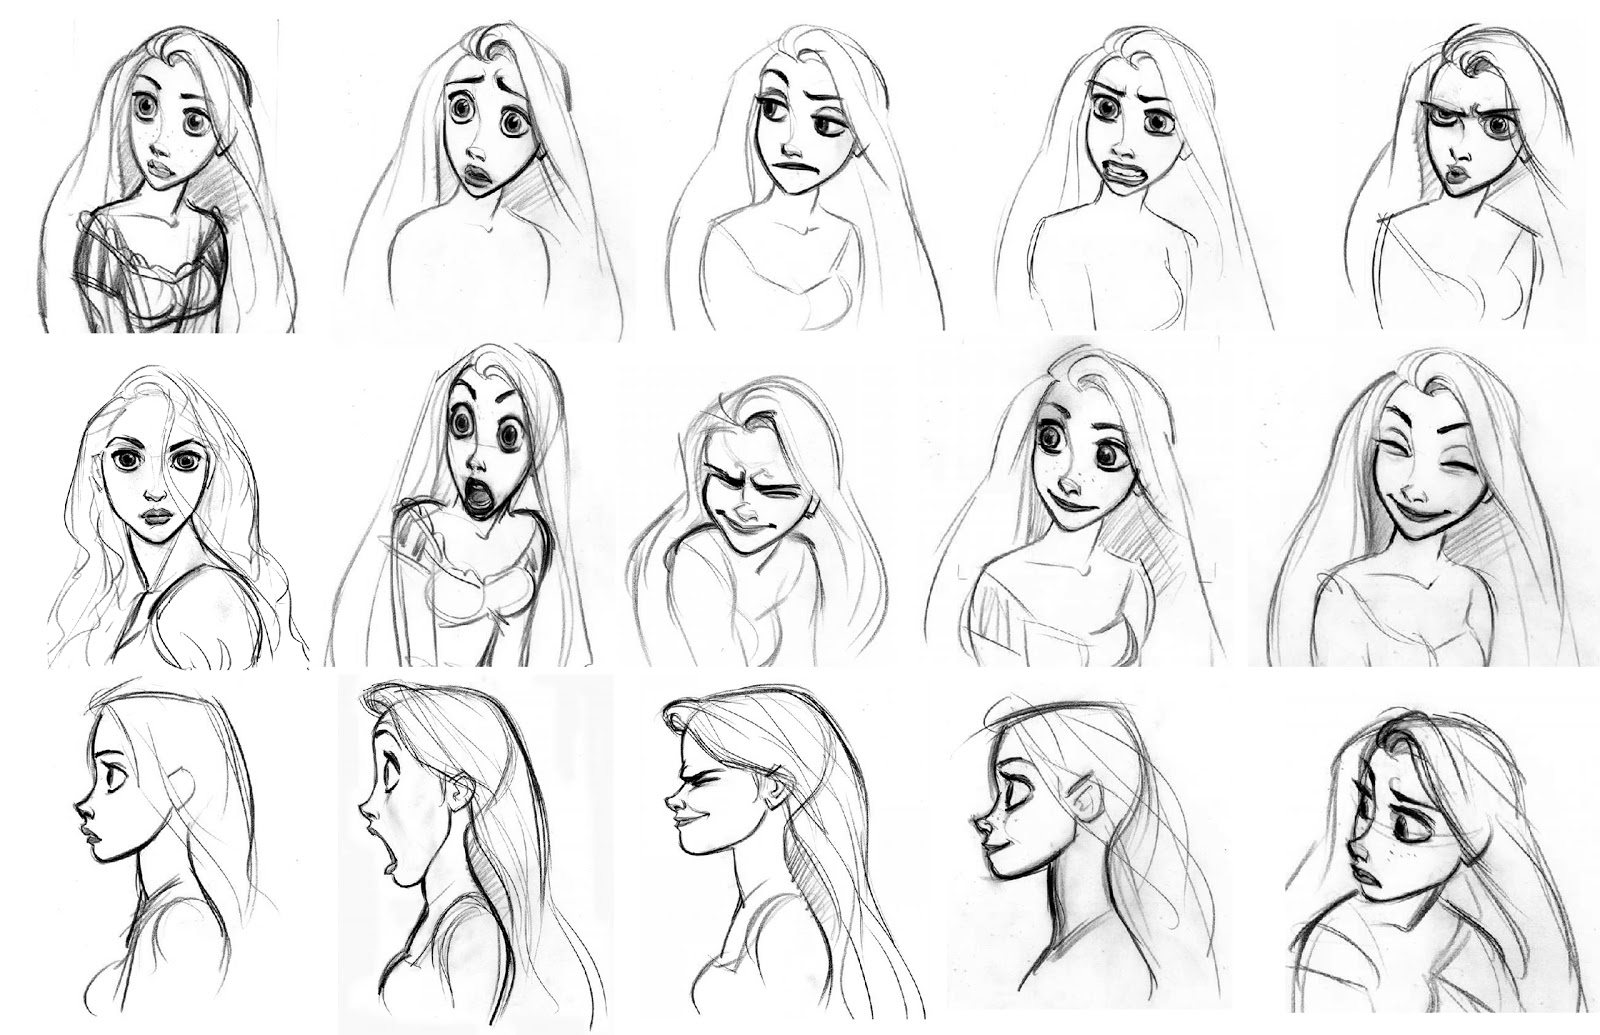 Drawing Animation Character Design : Rapunzel character designs expression sheets tangled